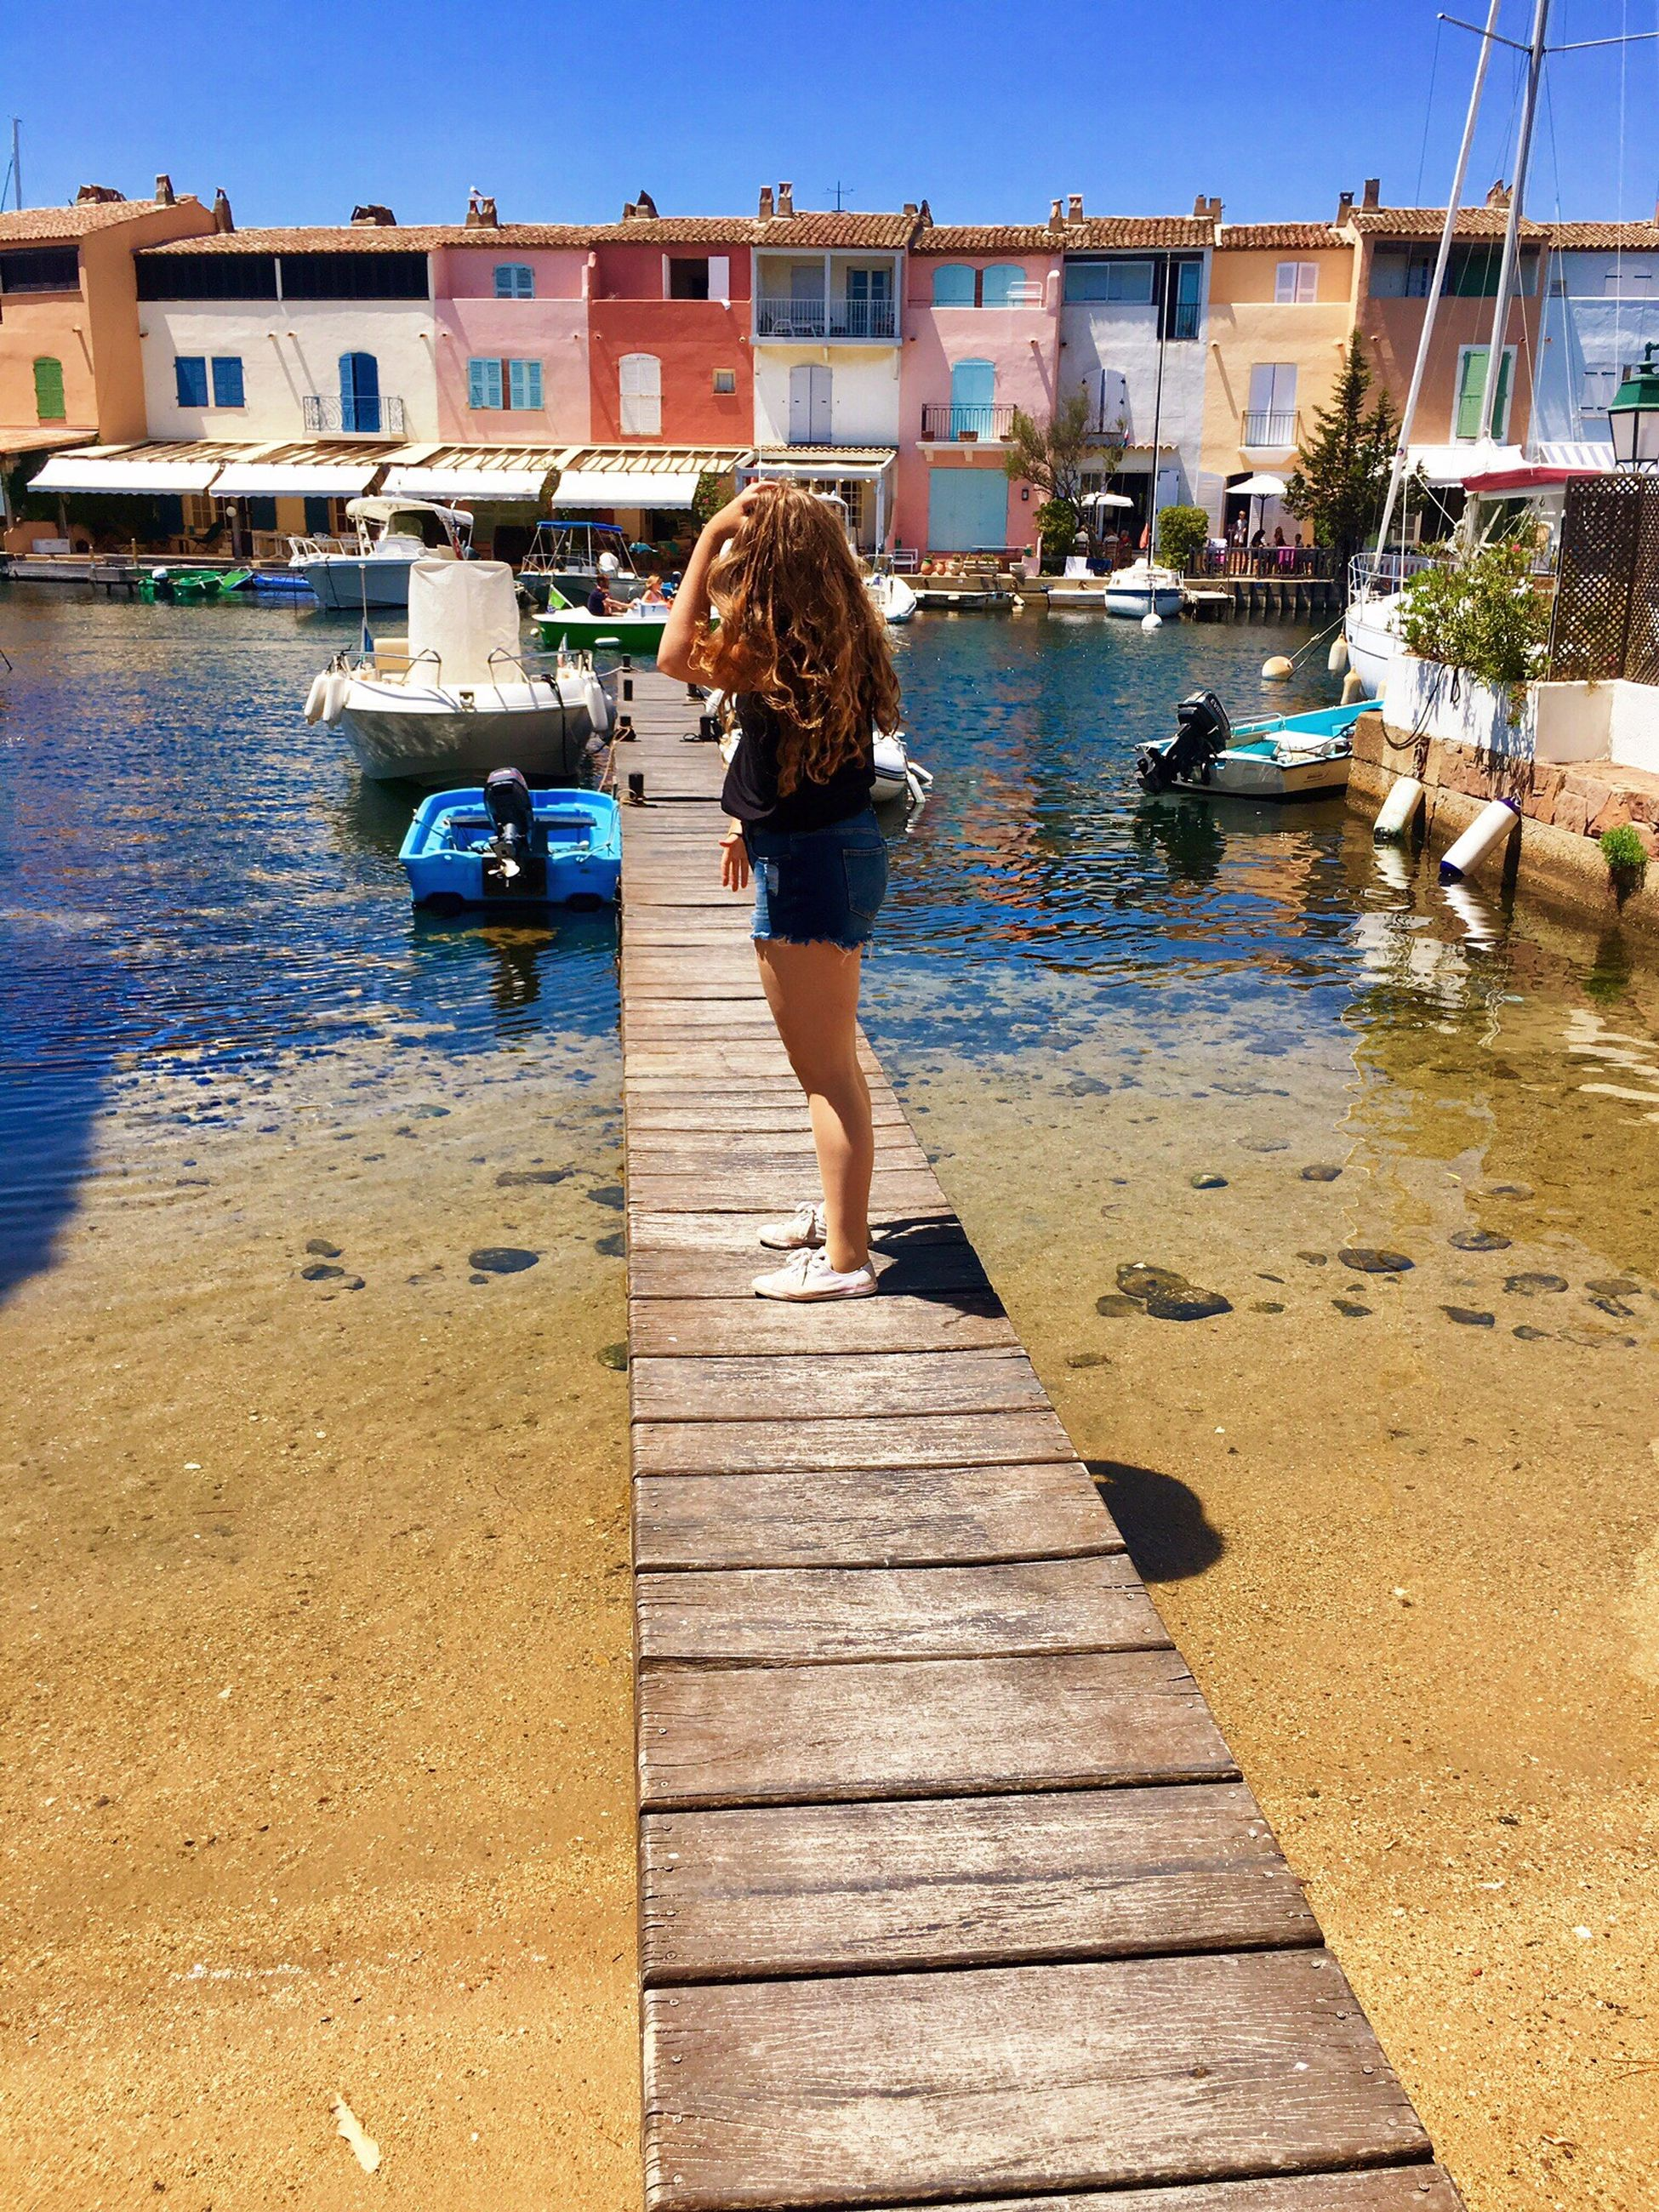 water, real people, built structure, rear view, architecture, one person, building exterior, day, outdoors, full length, women, lifestyles, nature, clear sky, young adult, young women, sky, people